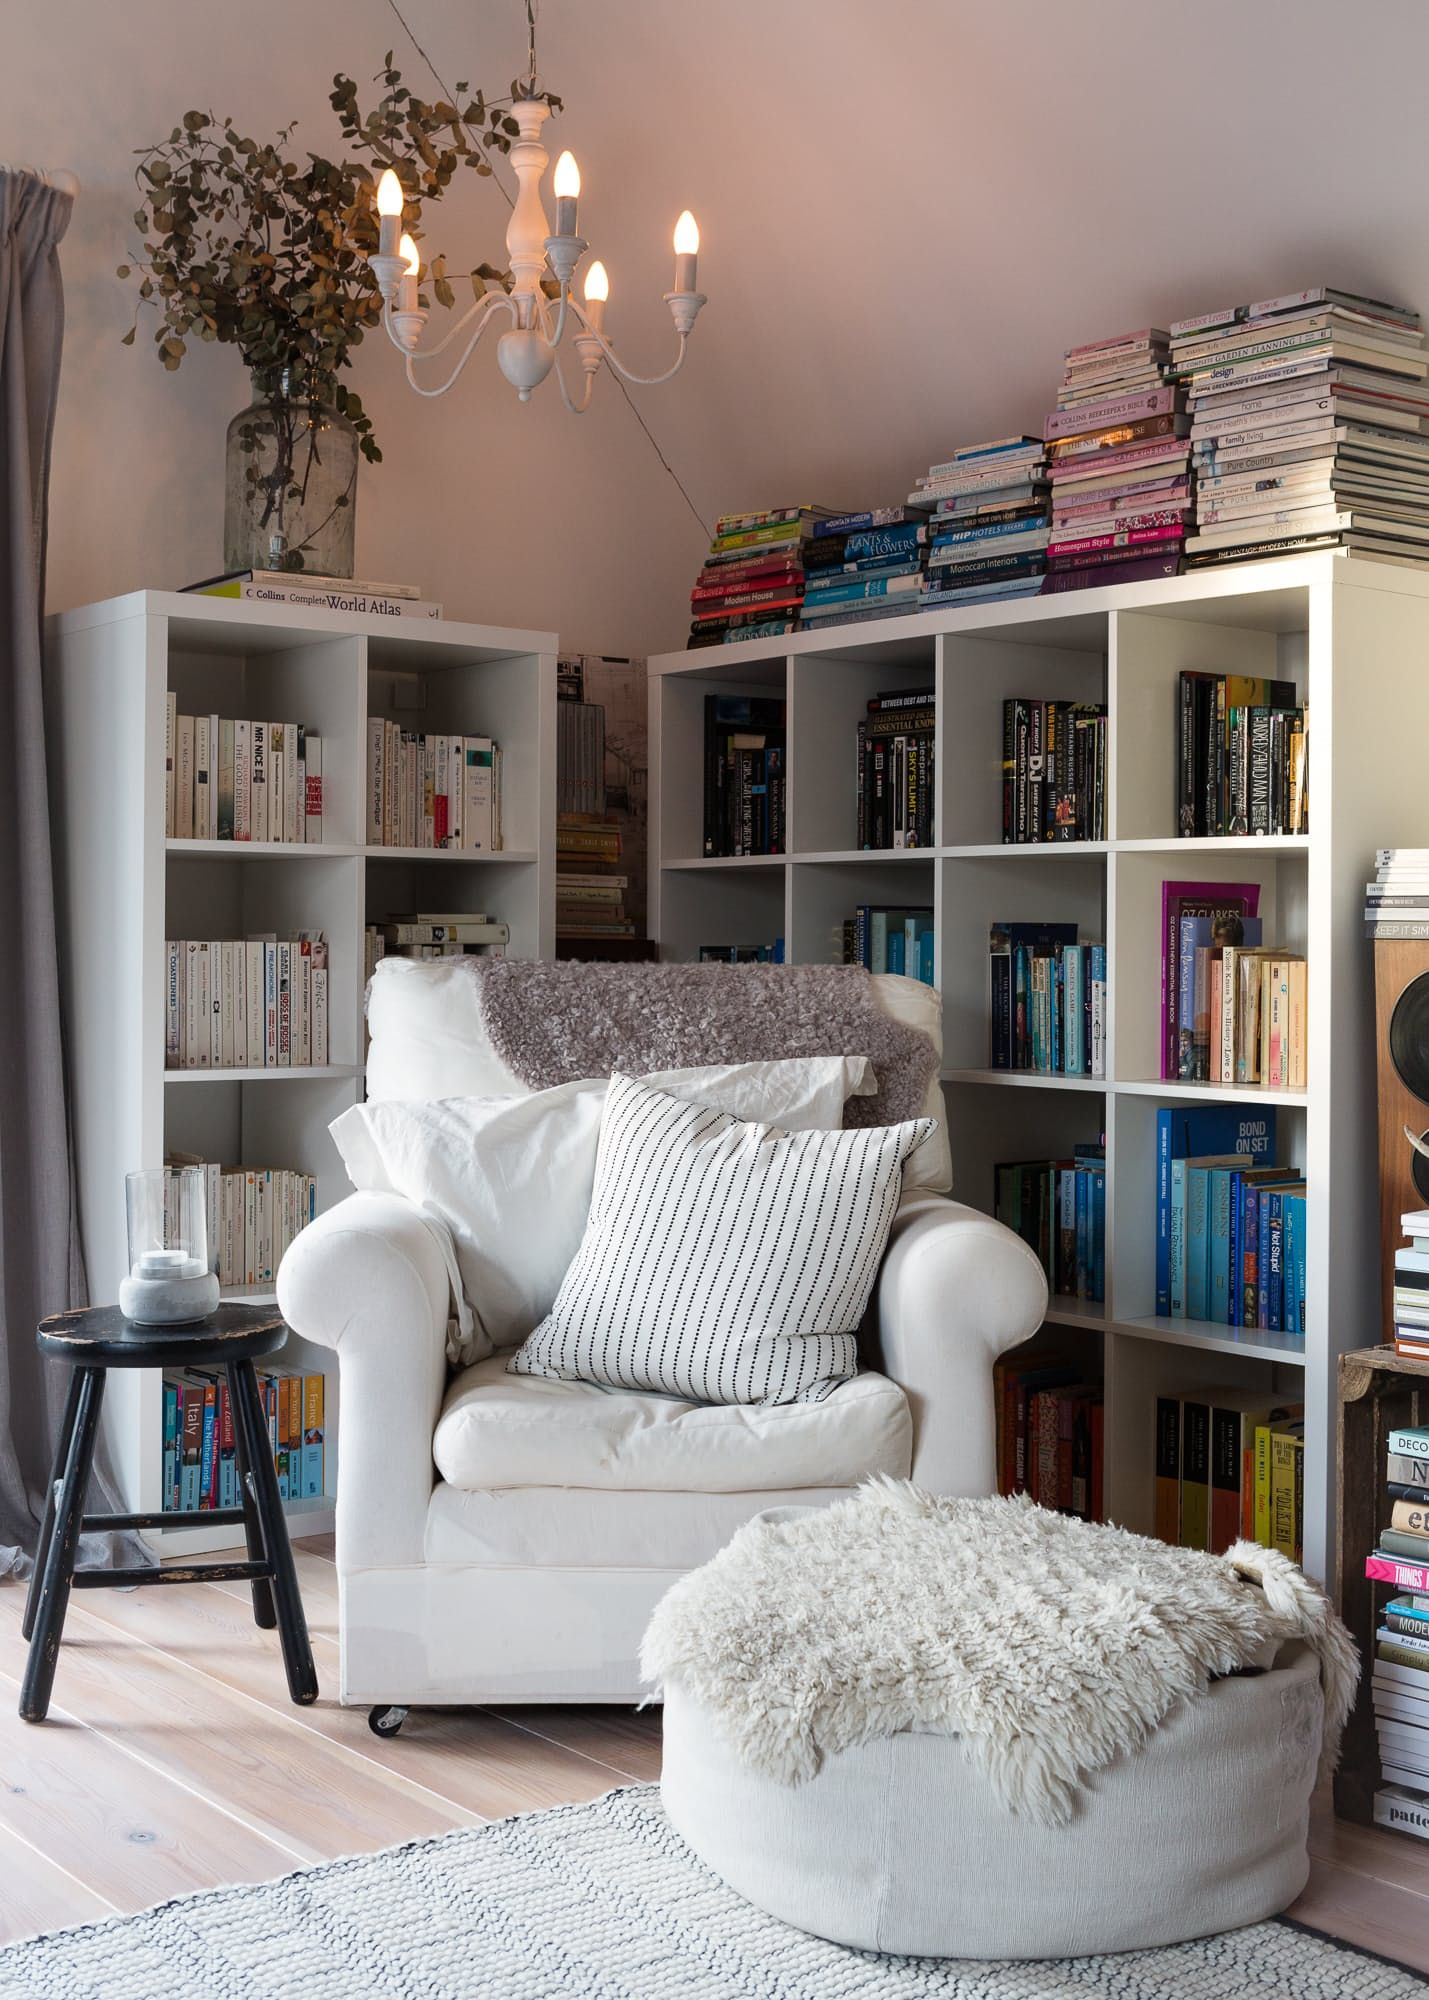 A Cosy Reading Corner In The Loft.